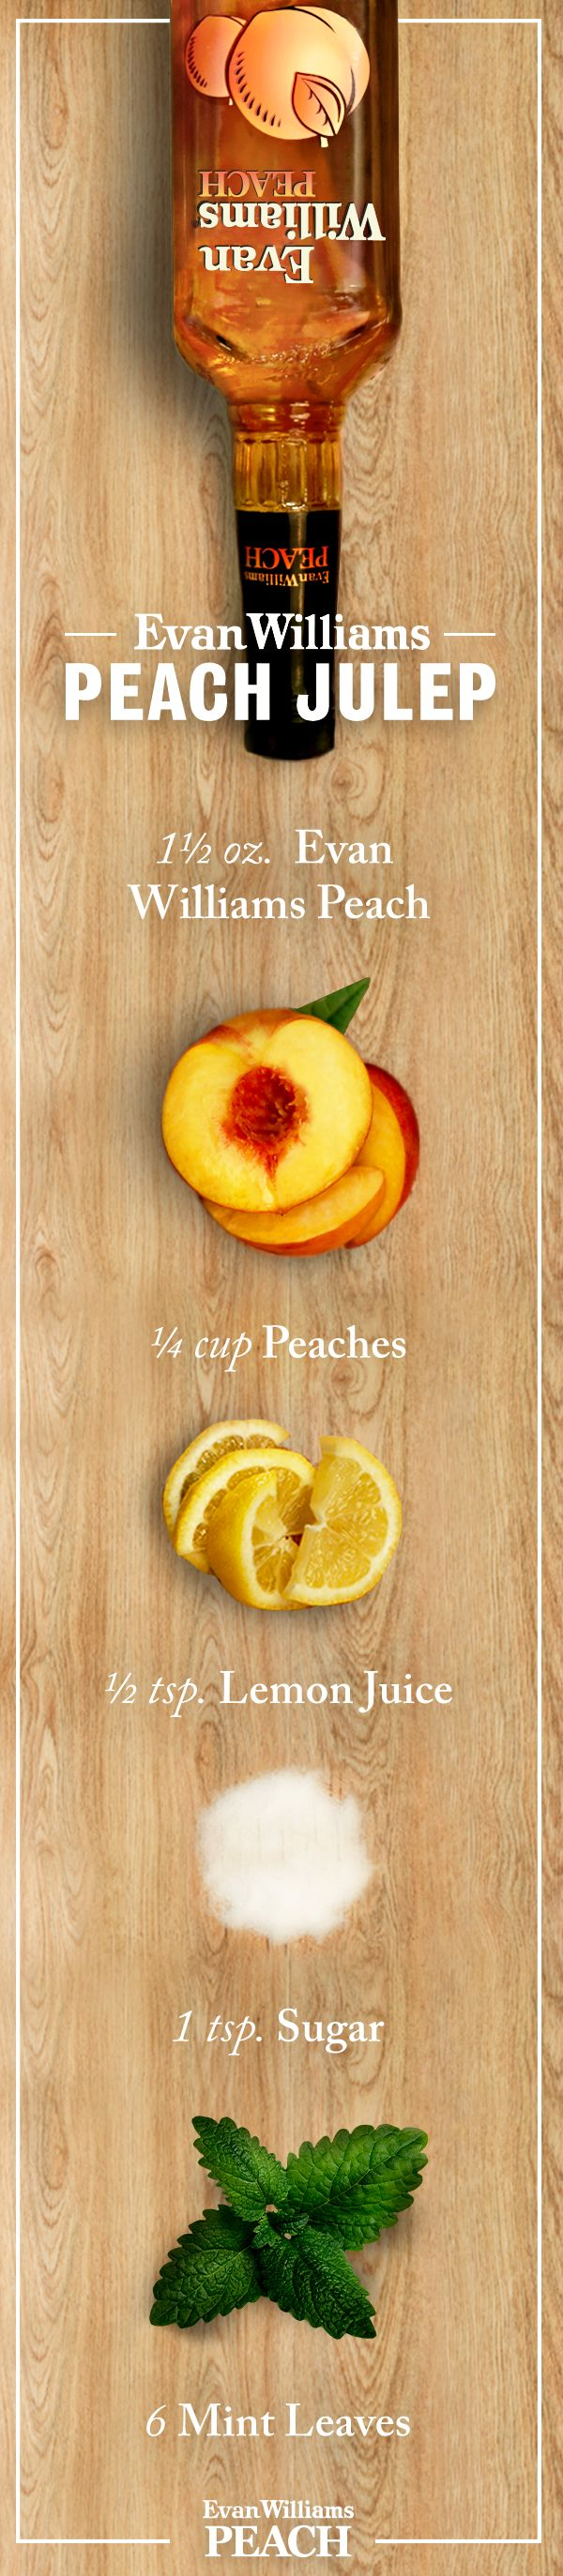 Searching for a classic Peach cocktail? Try an Evan Williams Peach Julep and enjoy! #Bourbon